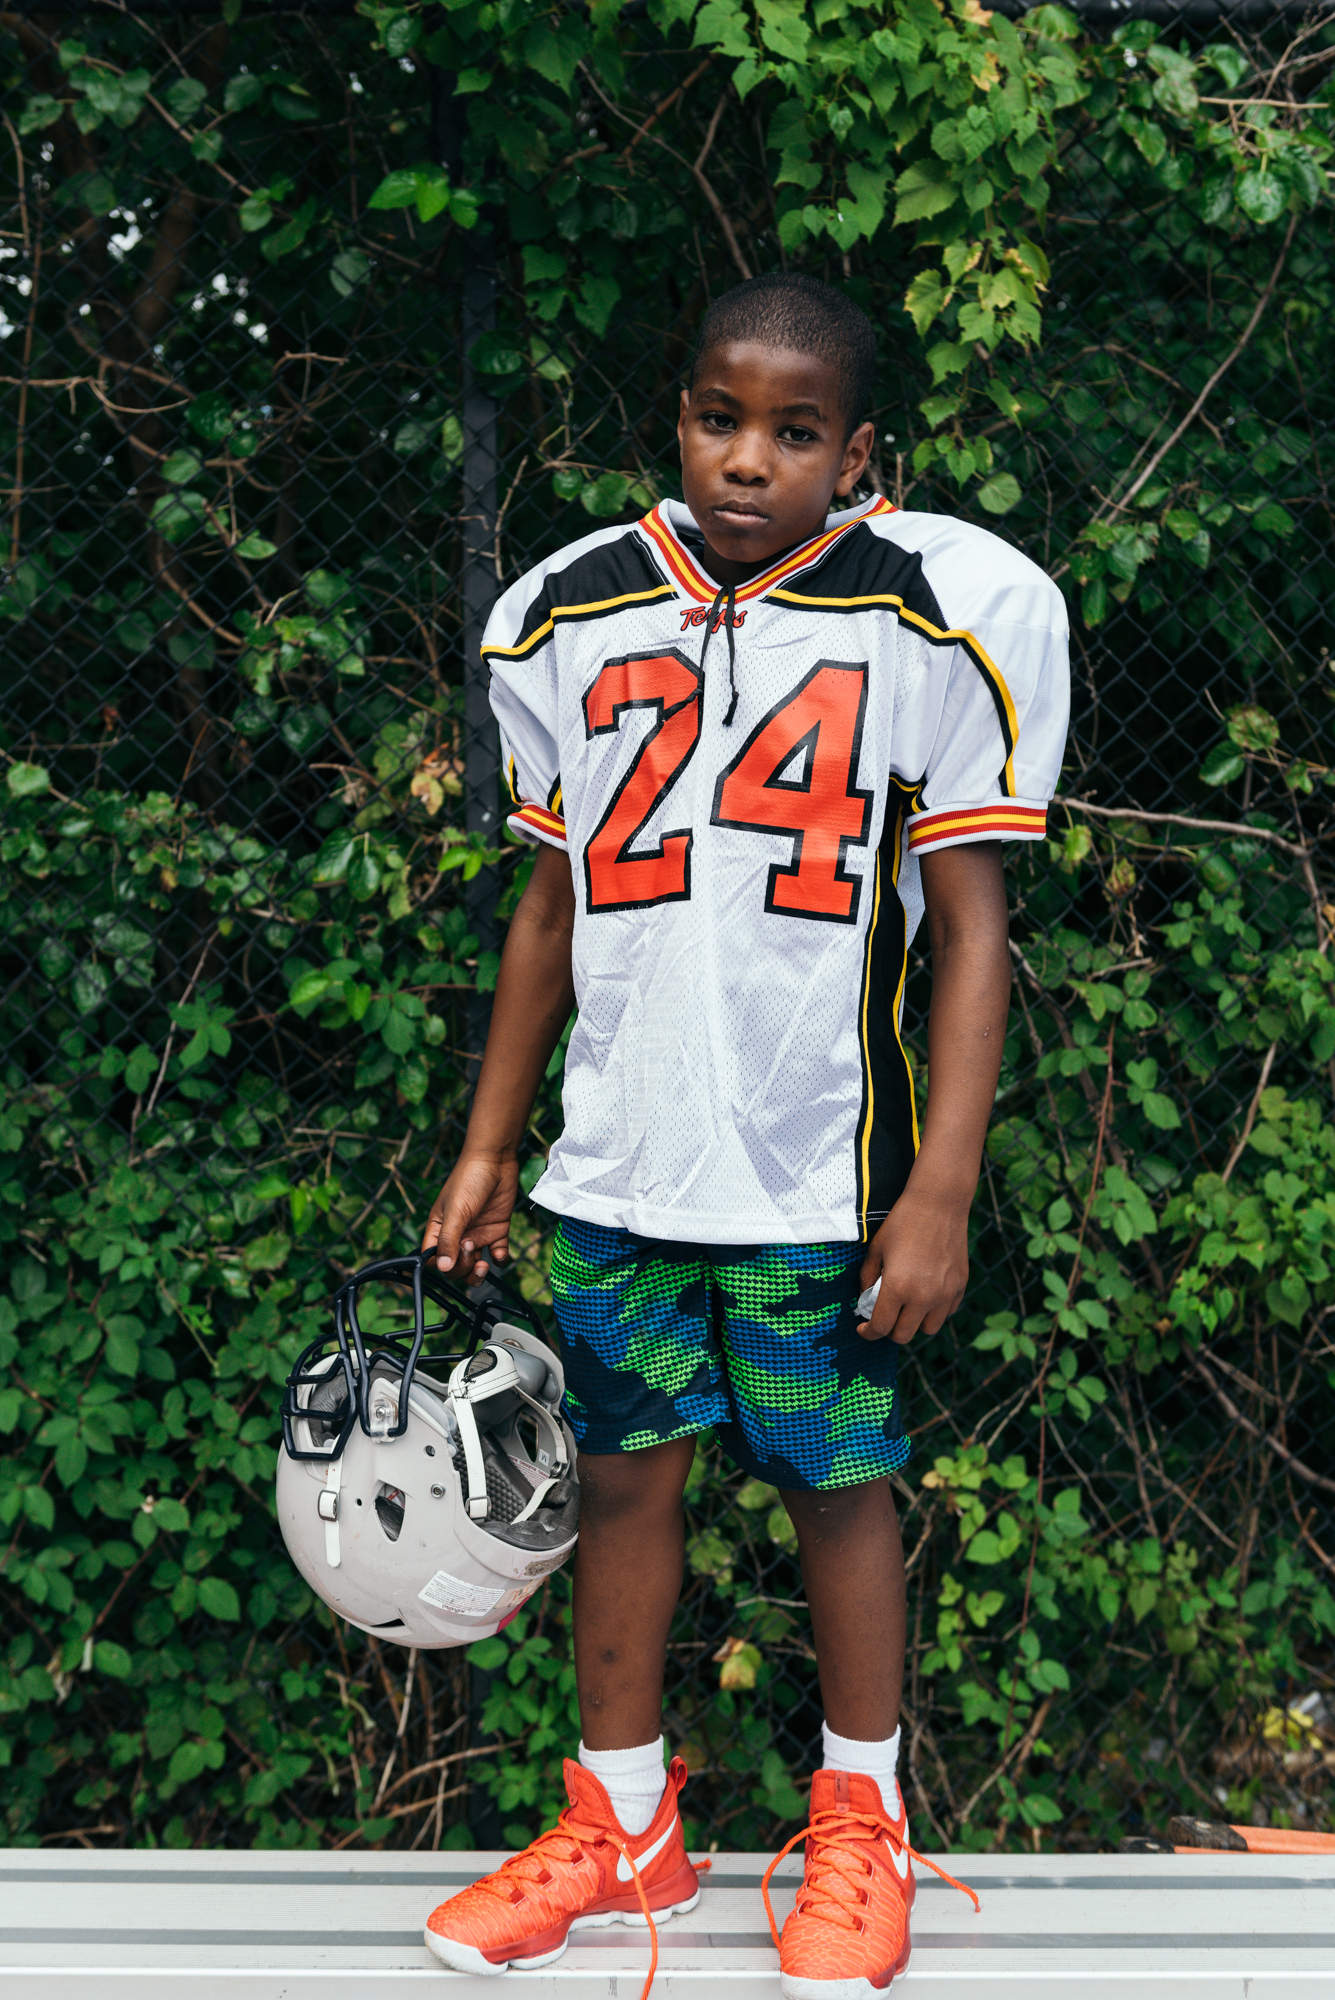 Portrait of Youth Football Player  - Greg Mionske - Advertising and Editorial Photographer in Denver